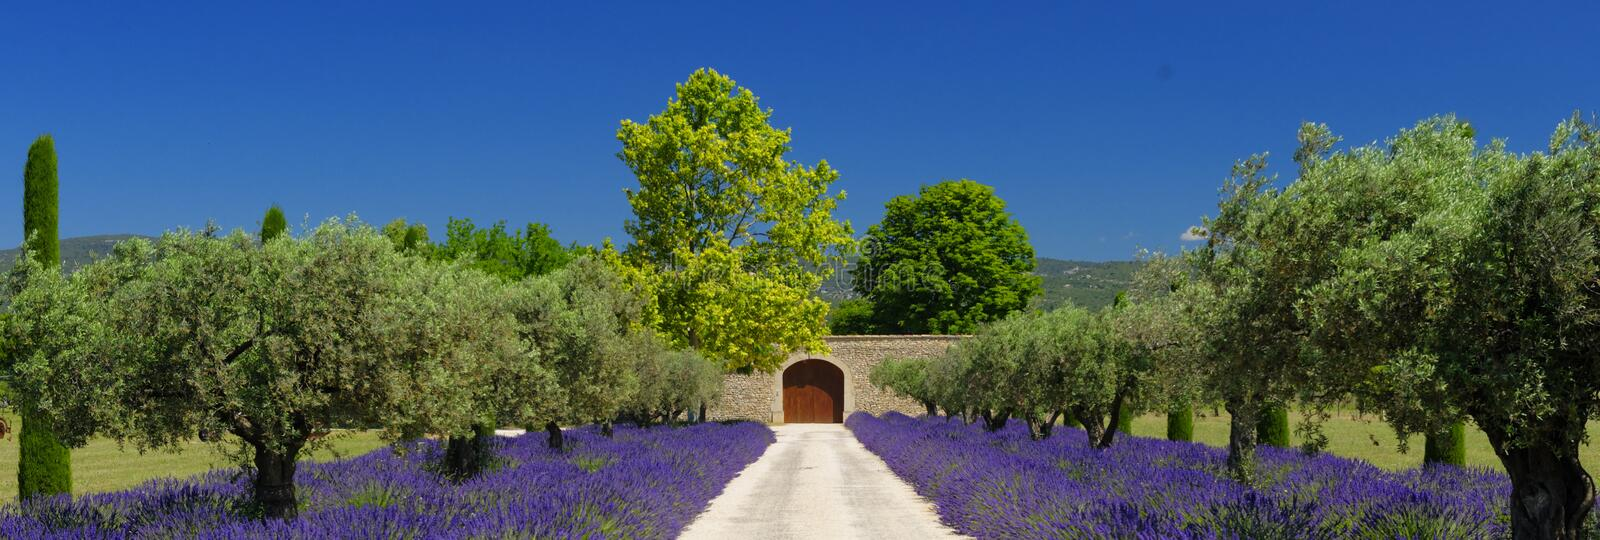 Lavender fields in Provence royalty free stock images